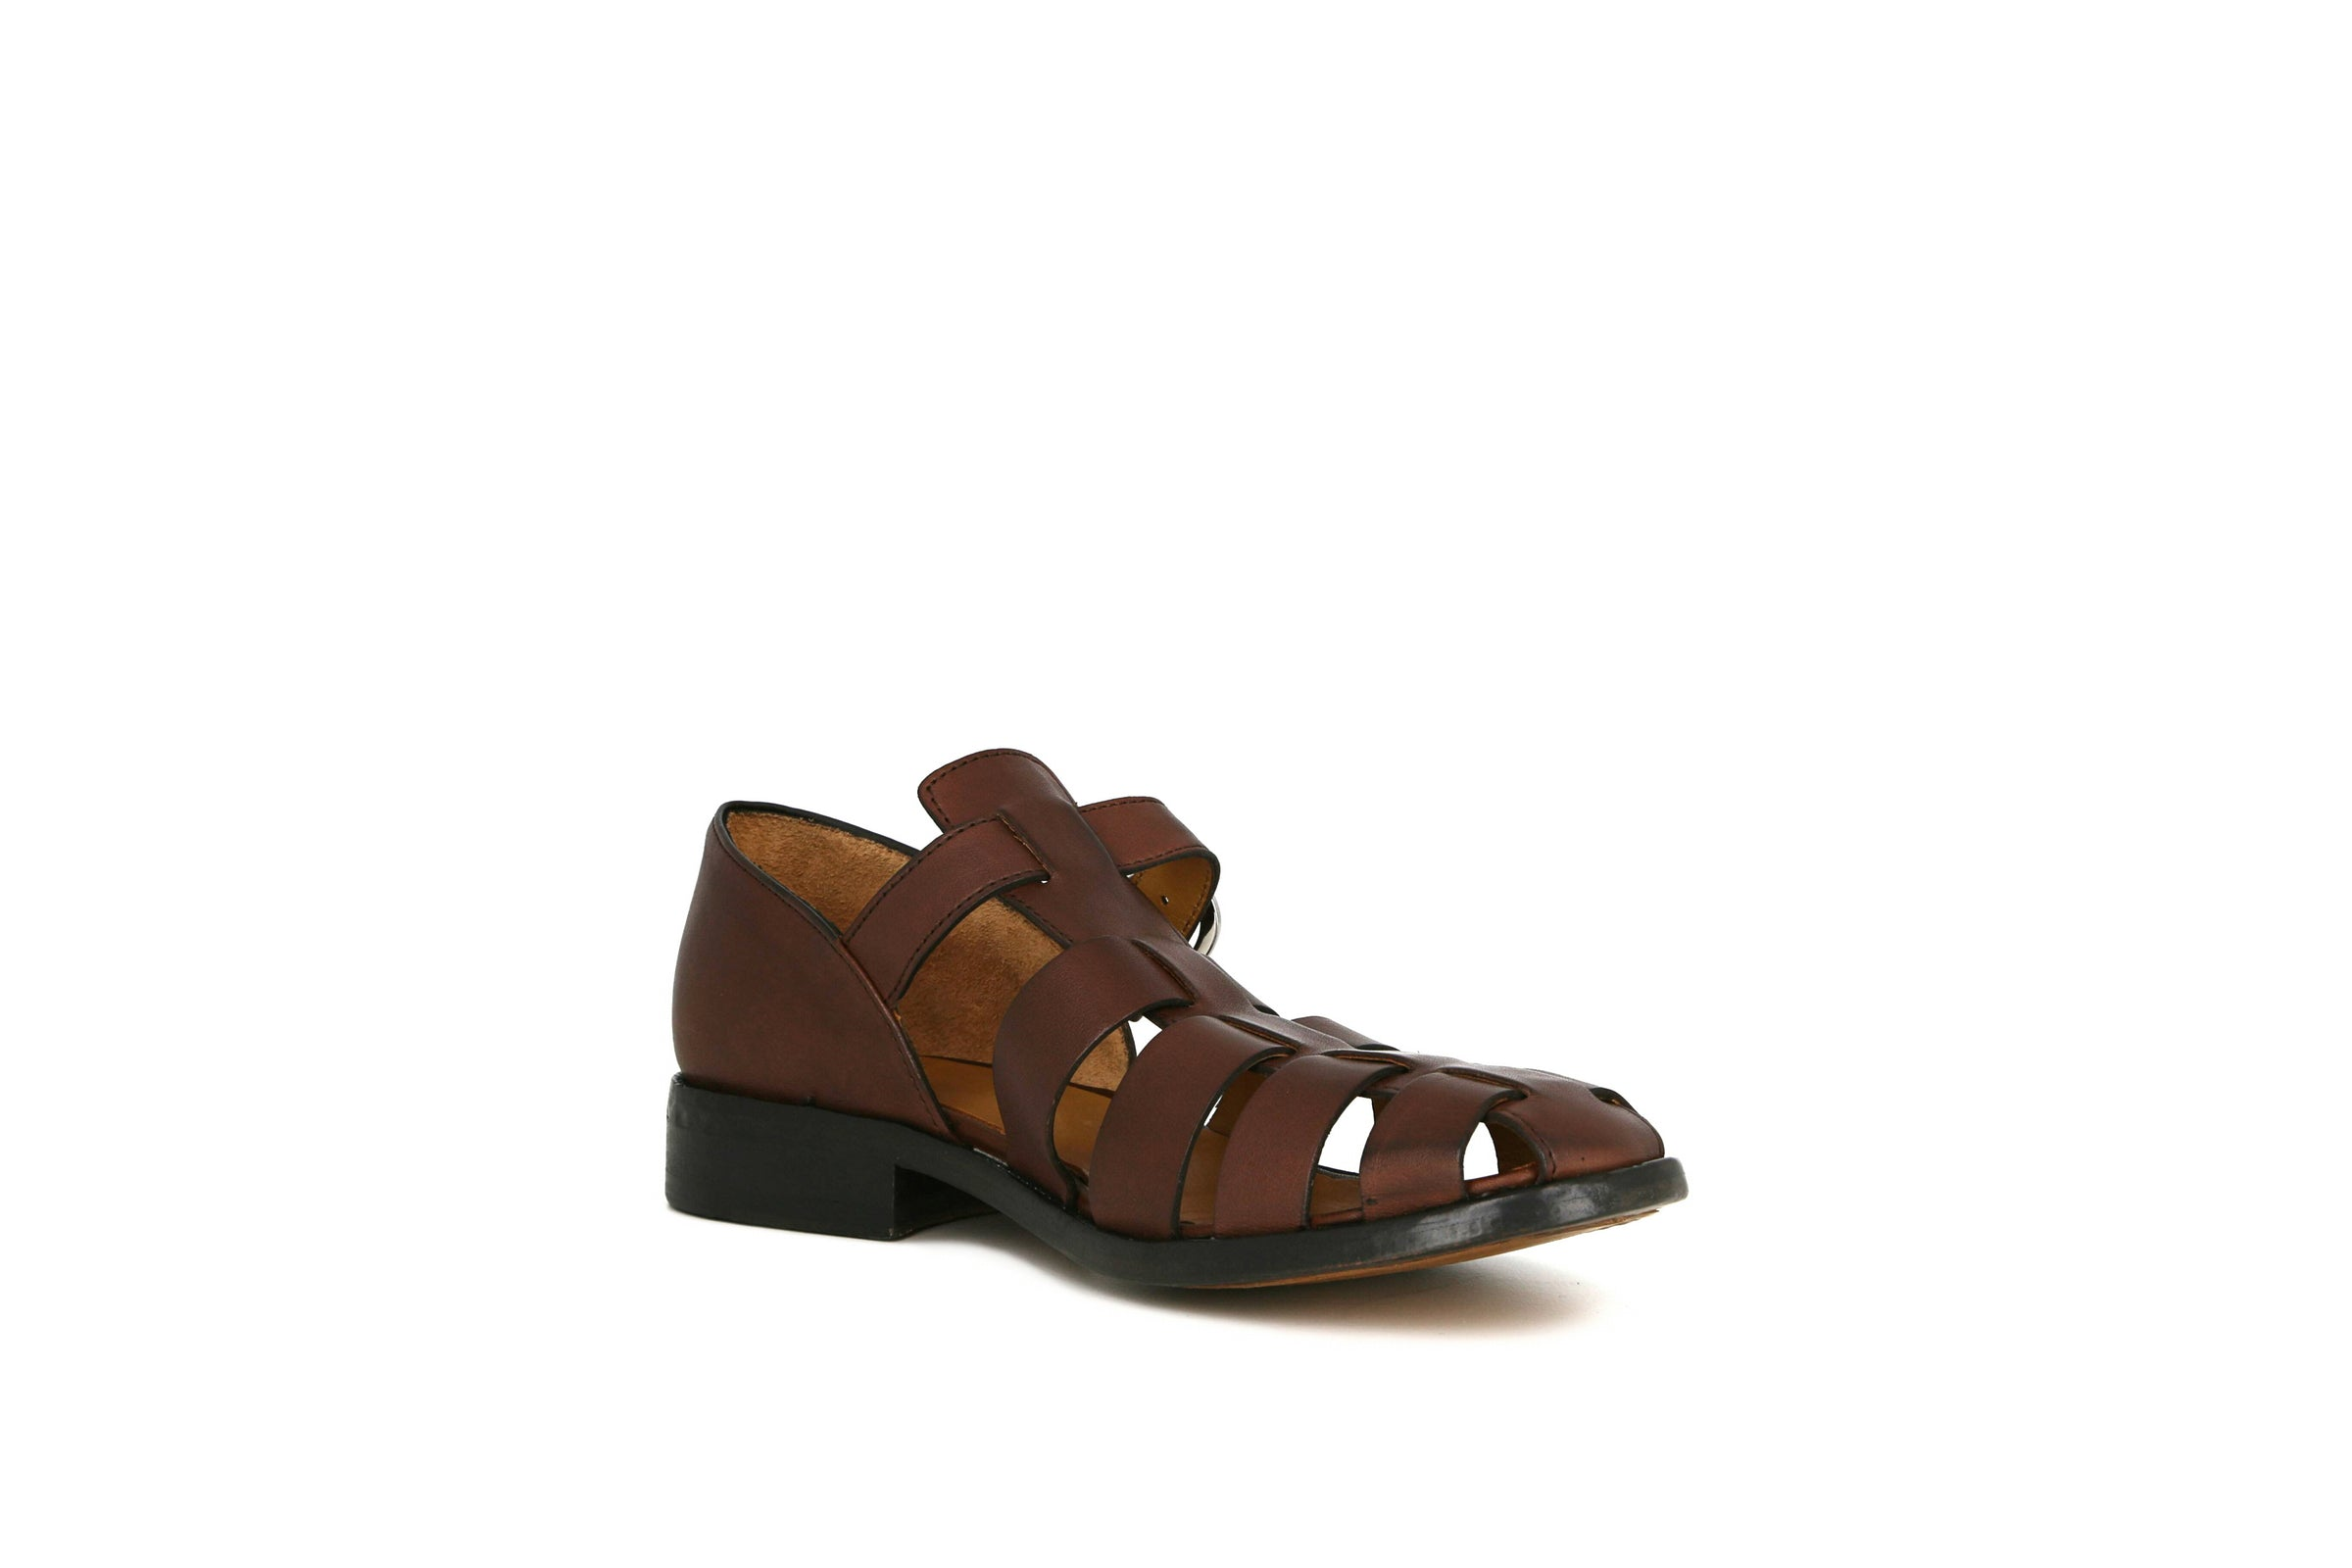 Guardian Gladiator Sandal